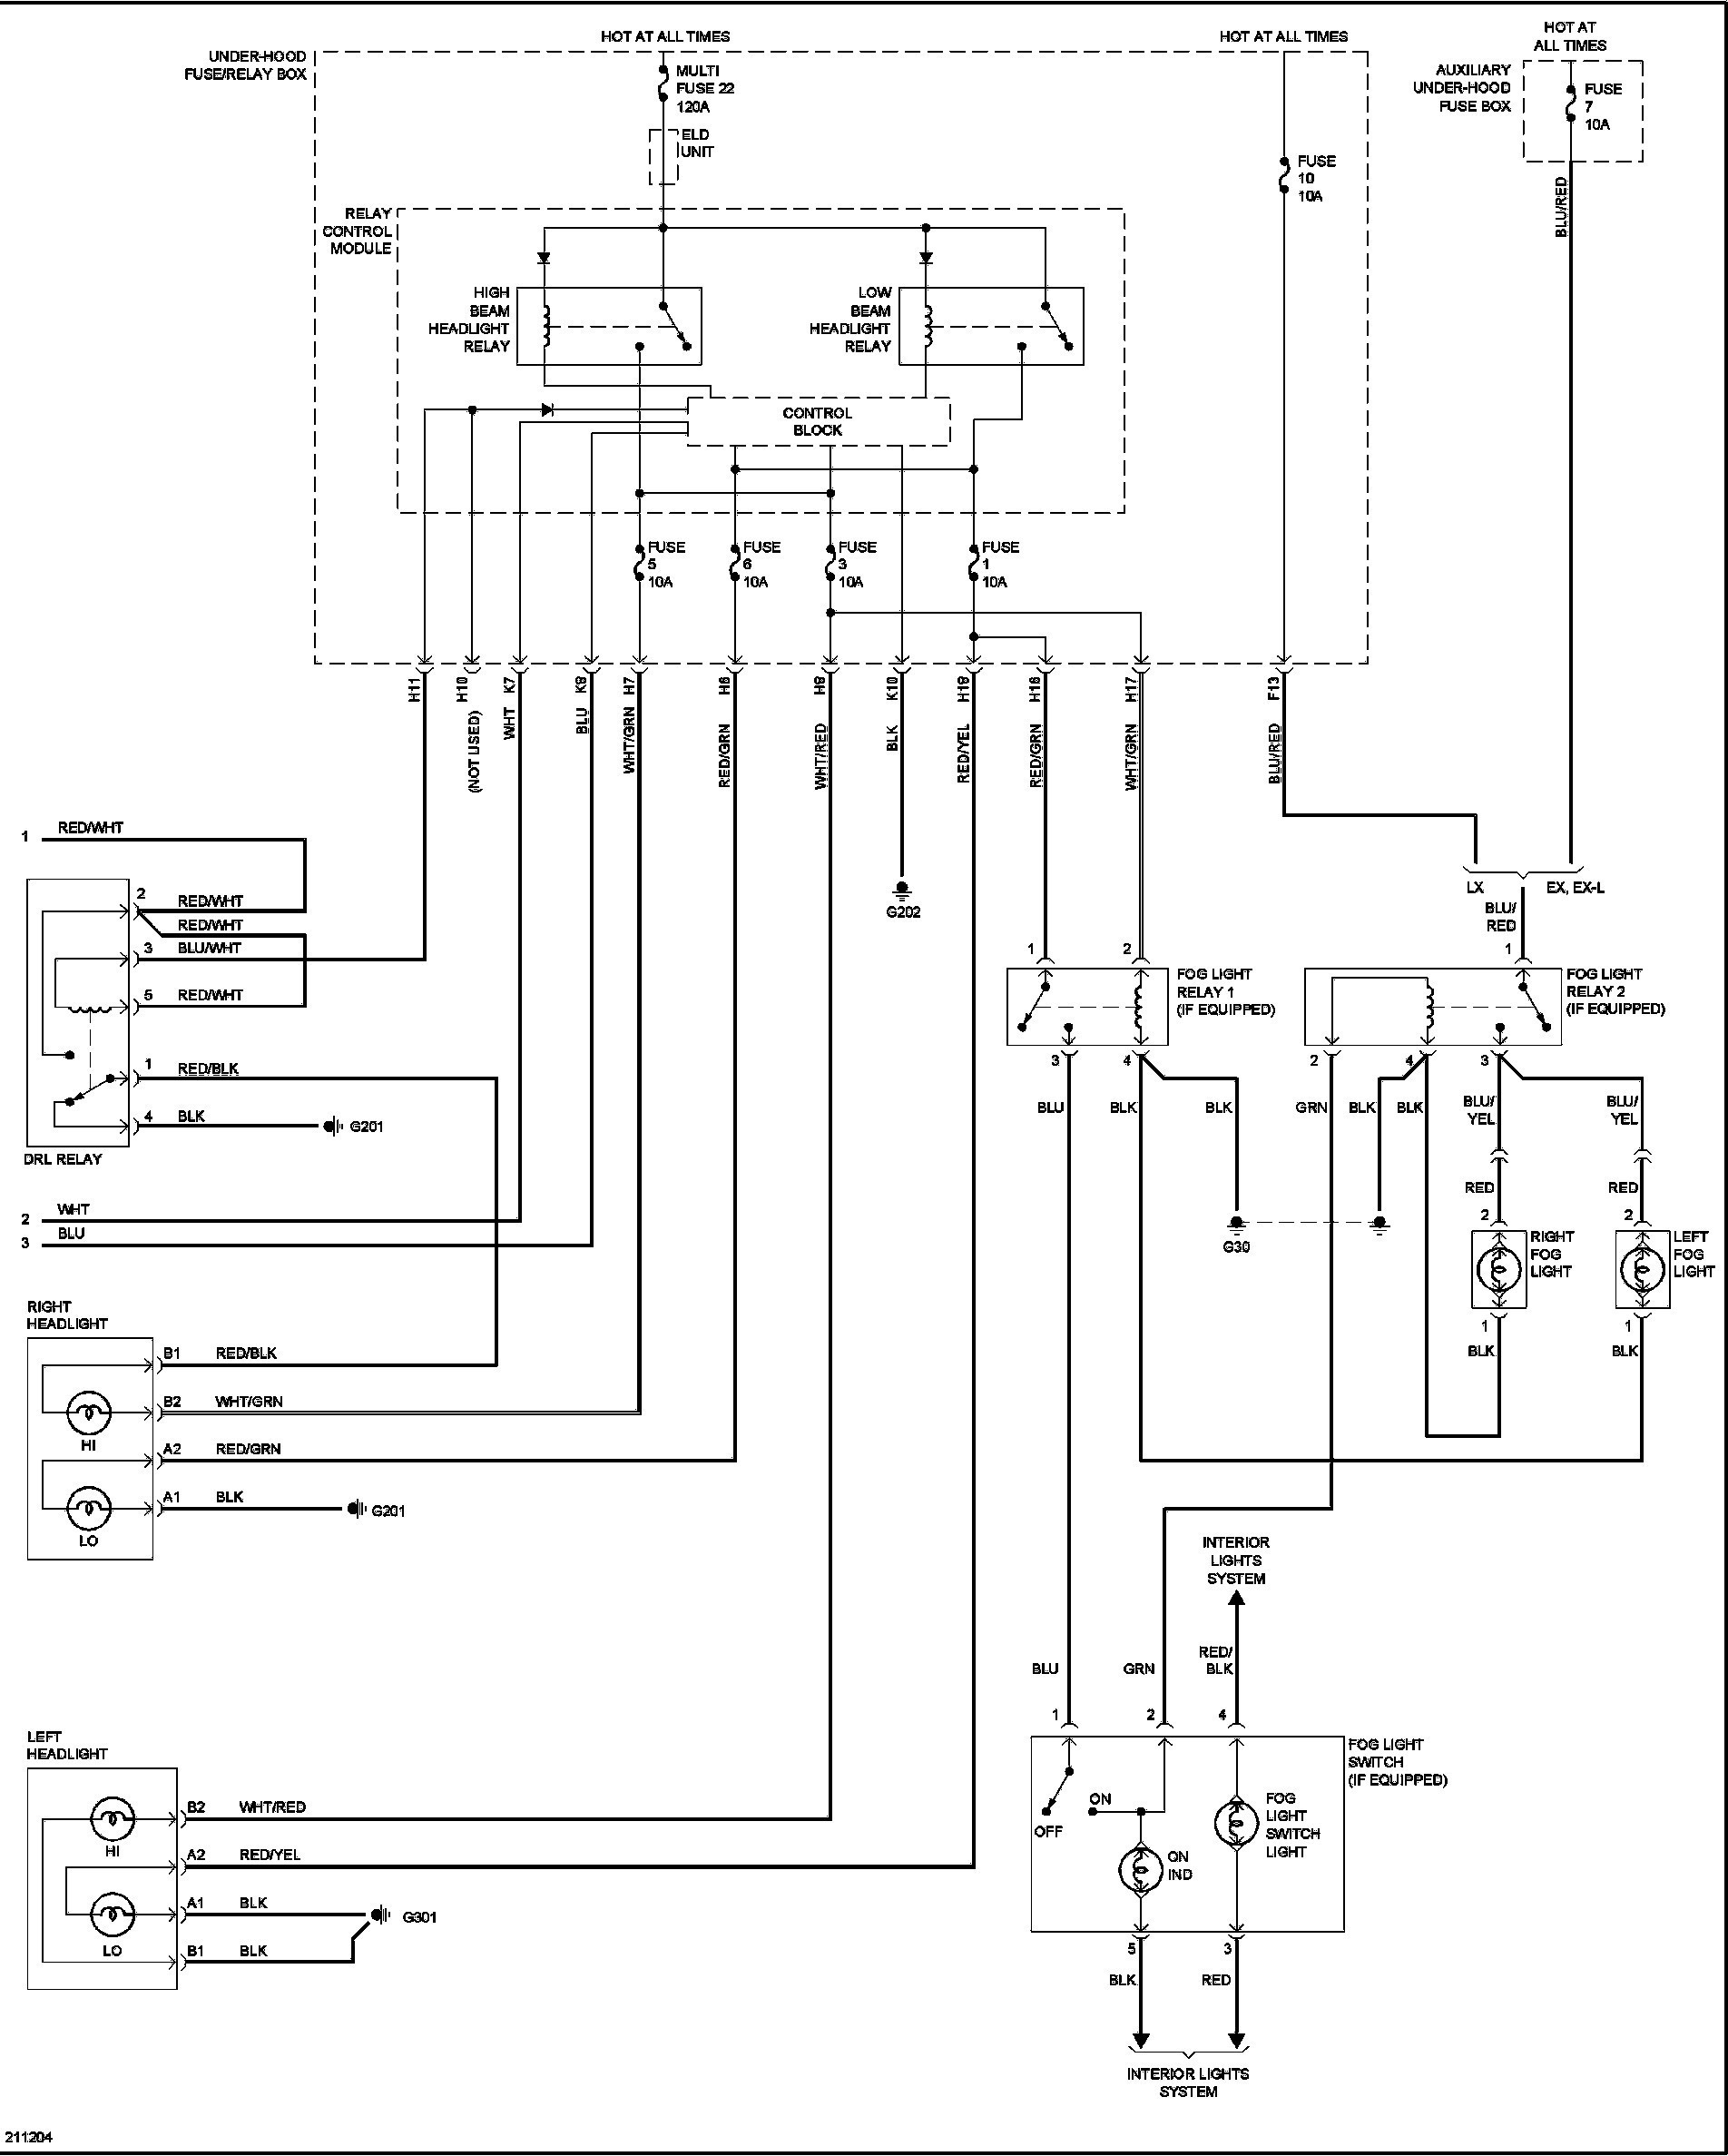 Accord Automatic Transmission Wiring Diagram | Wiring Diagram on 92 chevy camaro wiring diagram, 92 geo prizm wiring diagram, 92 lincoln town car wiring diagram, 92 honda engine wiring diagram, 92 dodge daytona wiring diagram, 92 honda accord seats, honda alternator wiring diagram, 92 honda accord fuel pump relay, 92 gmc sonoma wiring diagram, 92 honda accord heater, 92 honda accord flywheel, 93 honda accord engine diagram, 92 honda accord no spark, 92 buick lesabre wiring diagram, 92 honda accord coil, 92 honda accord fan belt, 92 dodge stealth wiring diagram, 92 honda accord frame, 92 honda accord clutch, 92 honda accord spark plugs,